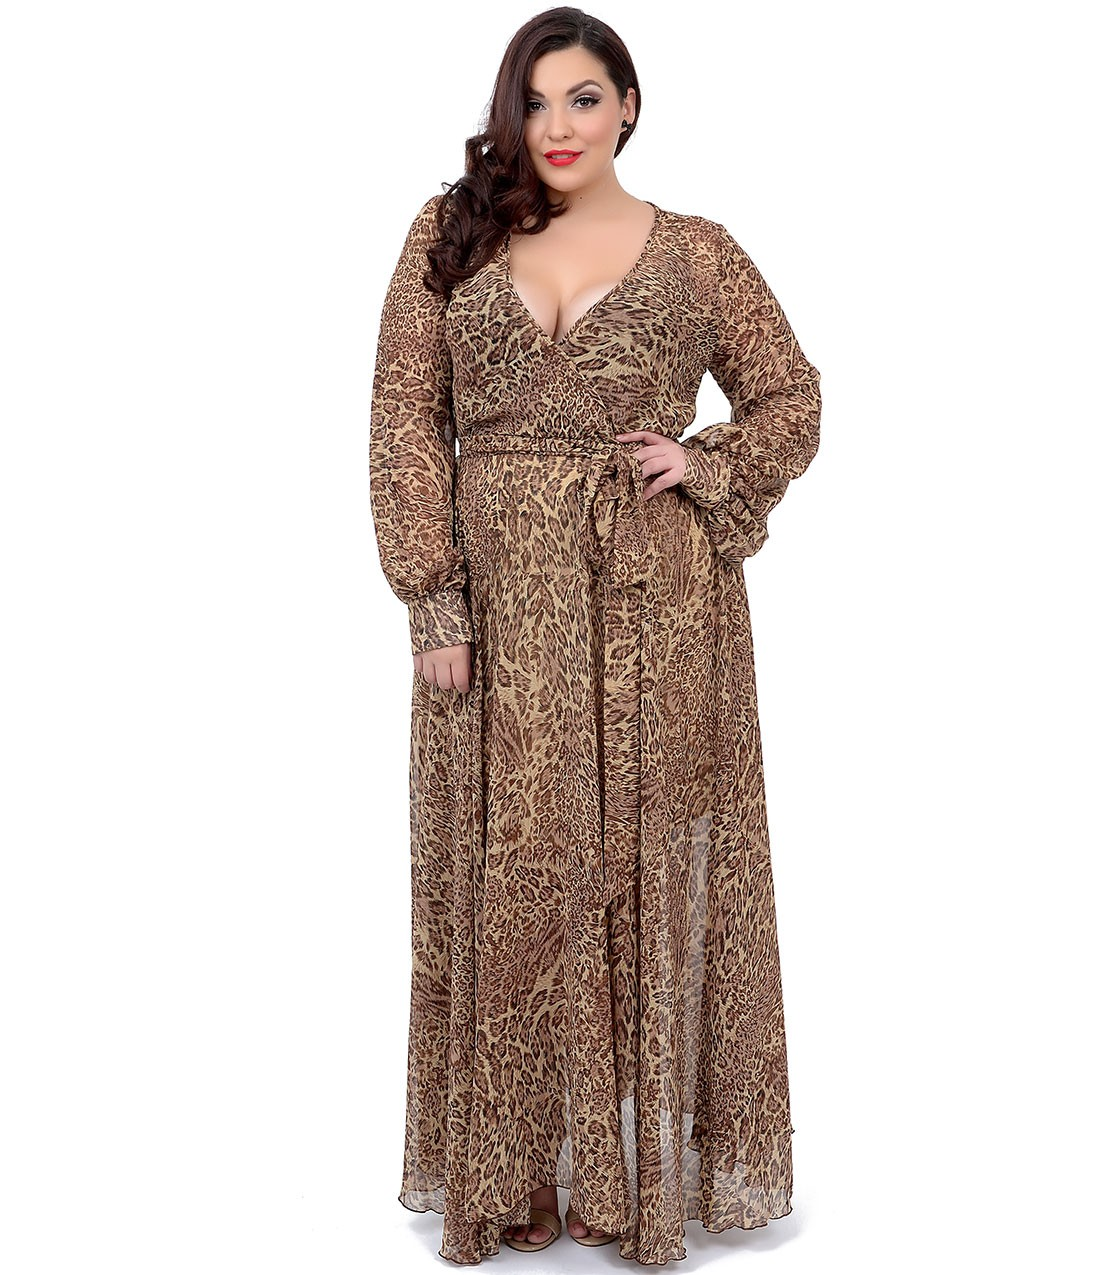 33 Plus Size Dresses To Wear On Valentines Day No Matter Your